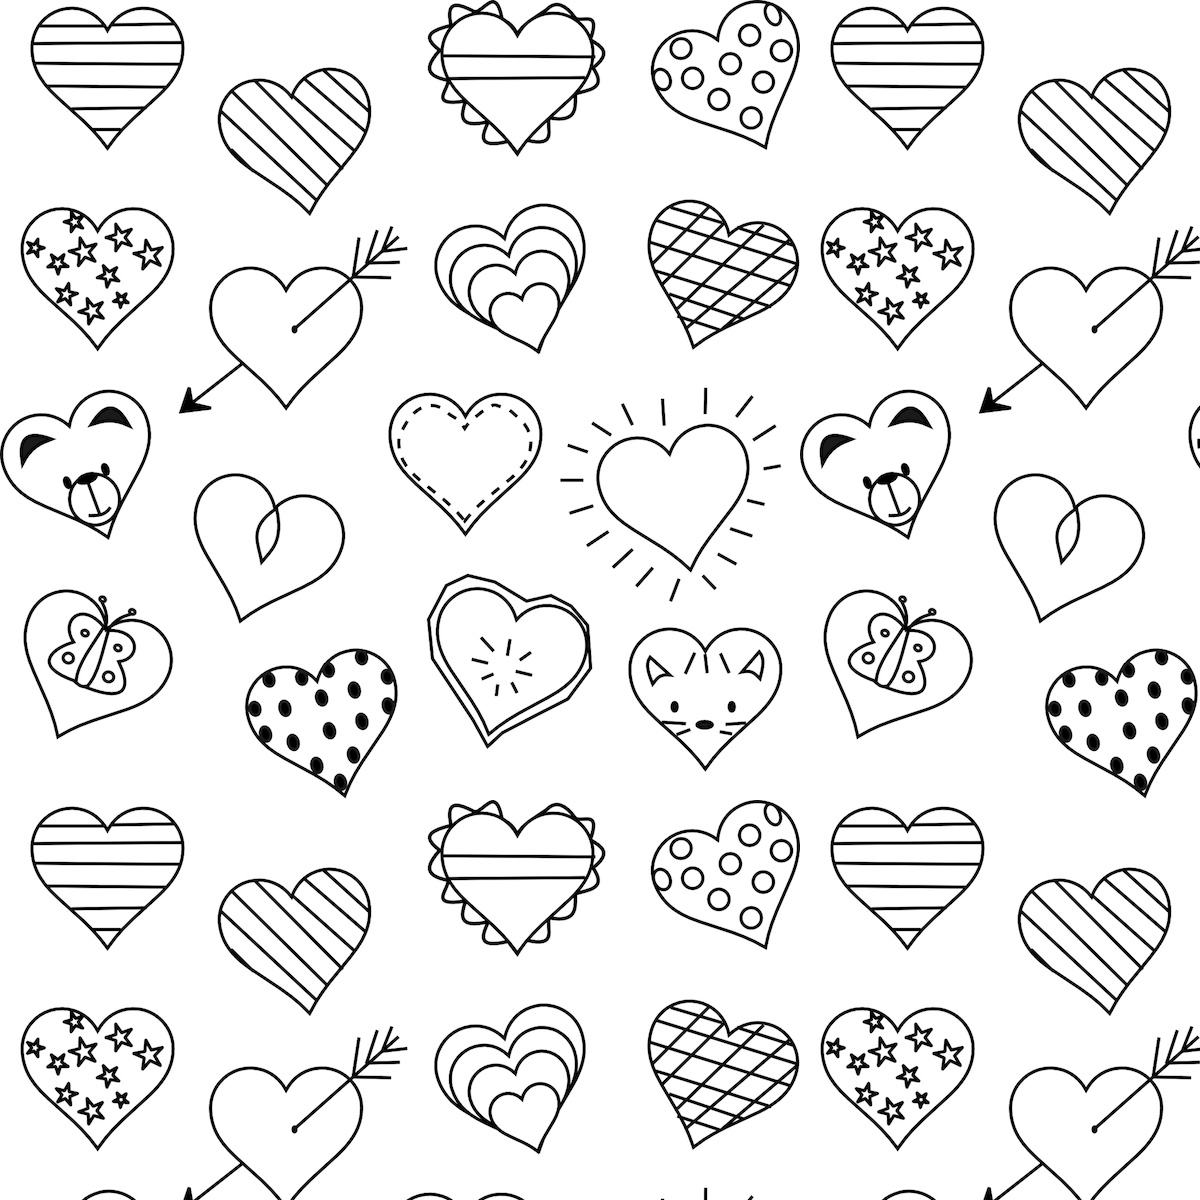 hearts coloring page easy heart coloring pages for kids stripe patterns coloring hearts page